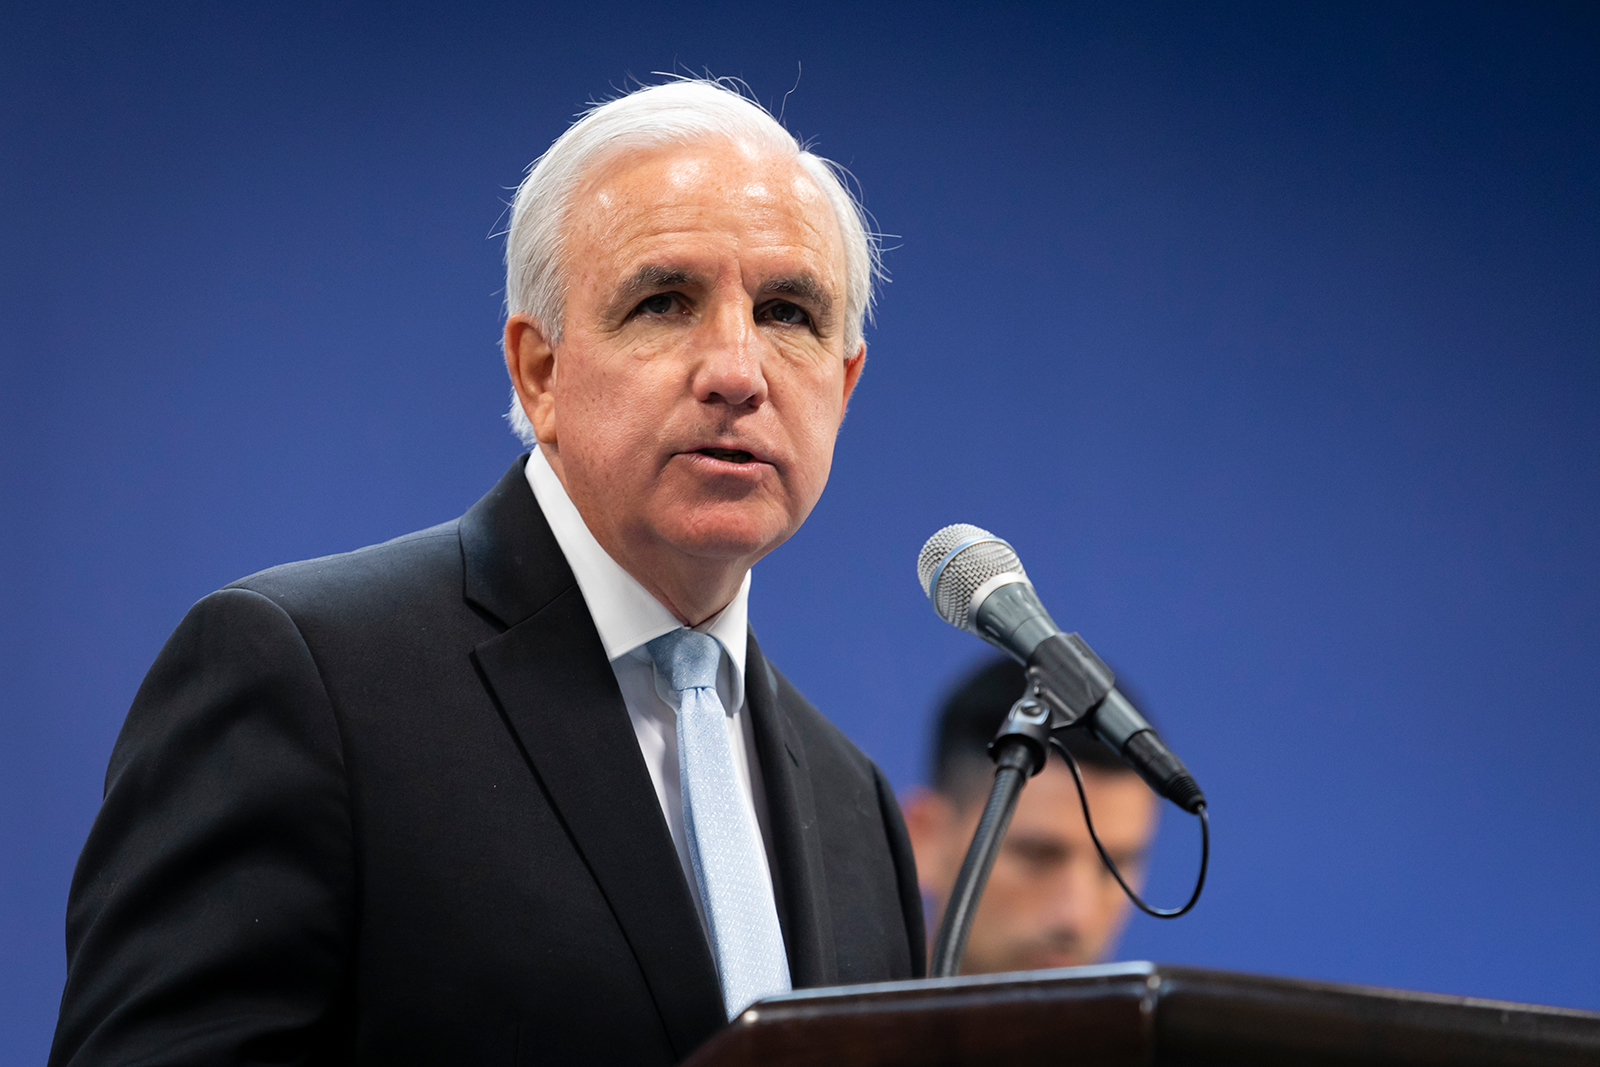 Miami-Dade Mayor Carlos Gimenez speaks during a press conference in Miami on June 8